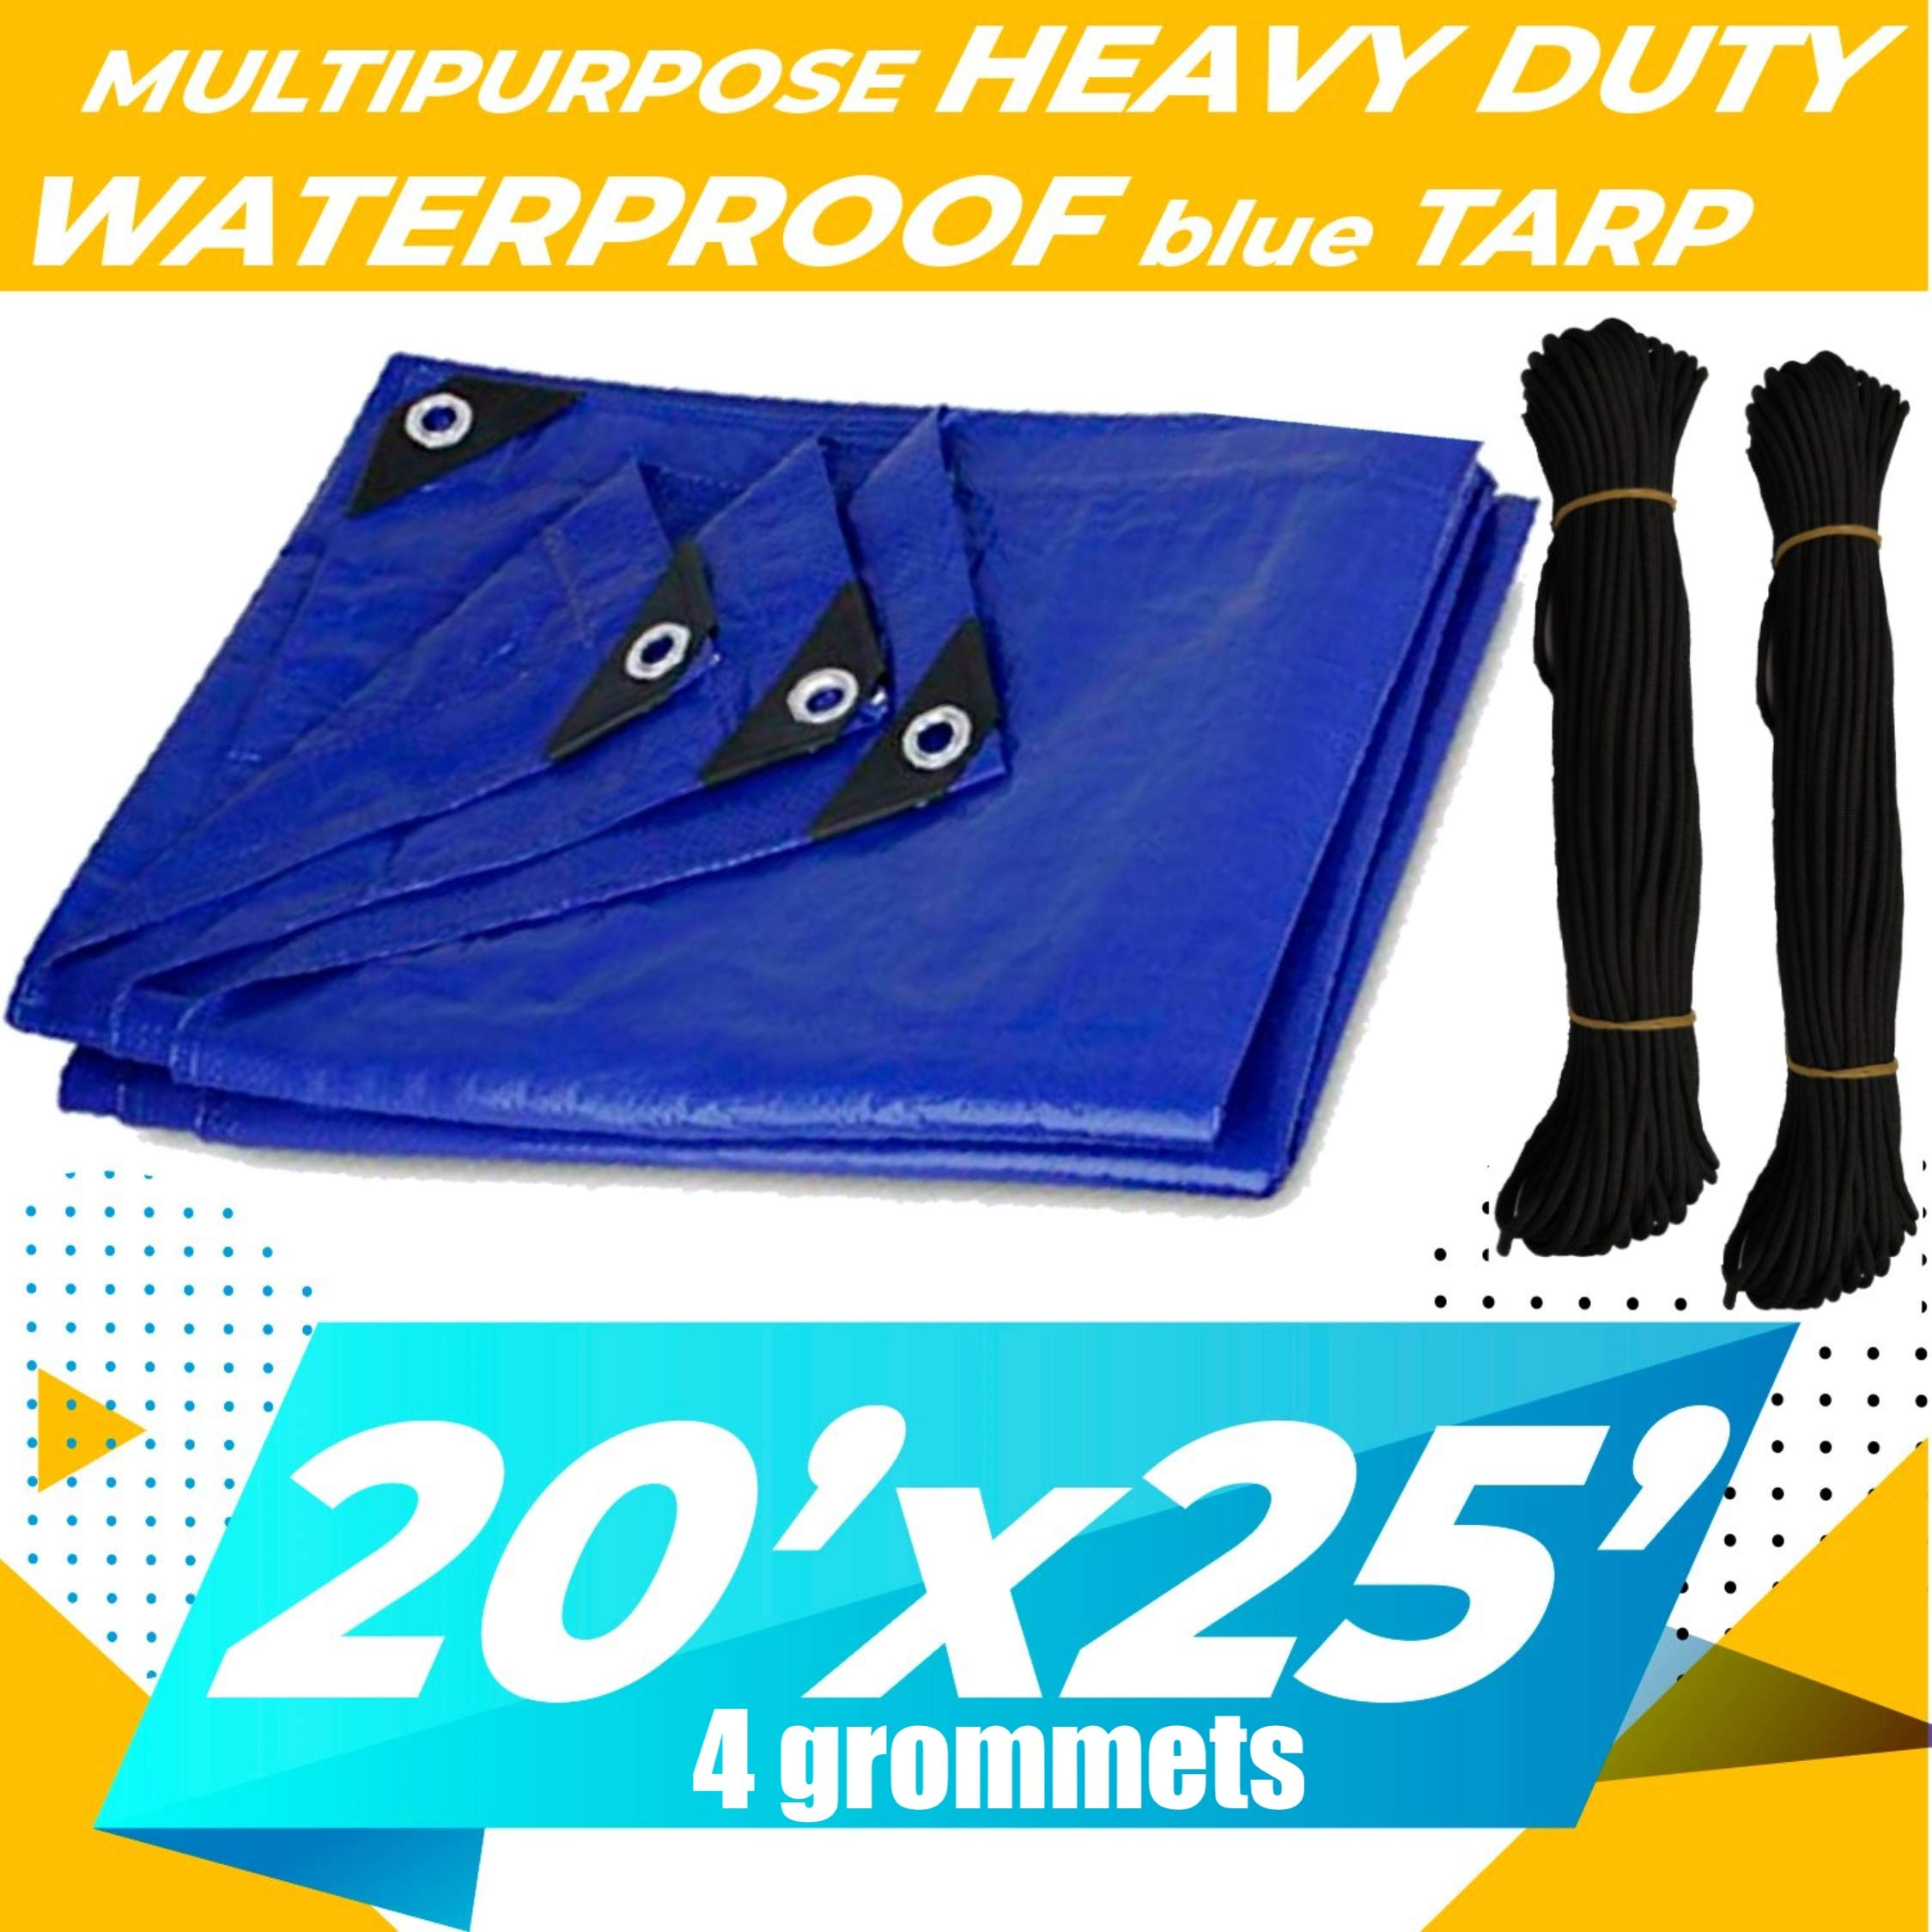 20'x25' Heavy Duty Waterproof Tarp - Multi-Purpose Blue Tarpaulin with  4 Grommets, Reinforced Edges and Nylon Paracord for Outdoor Rain Shelter, Ground Cover, Boat, RV, Car, Roof or Pool Cover